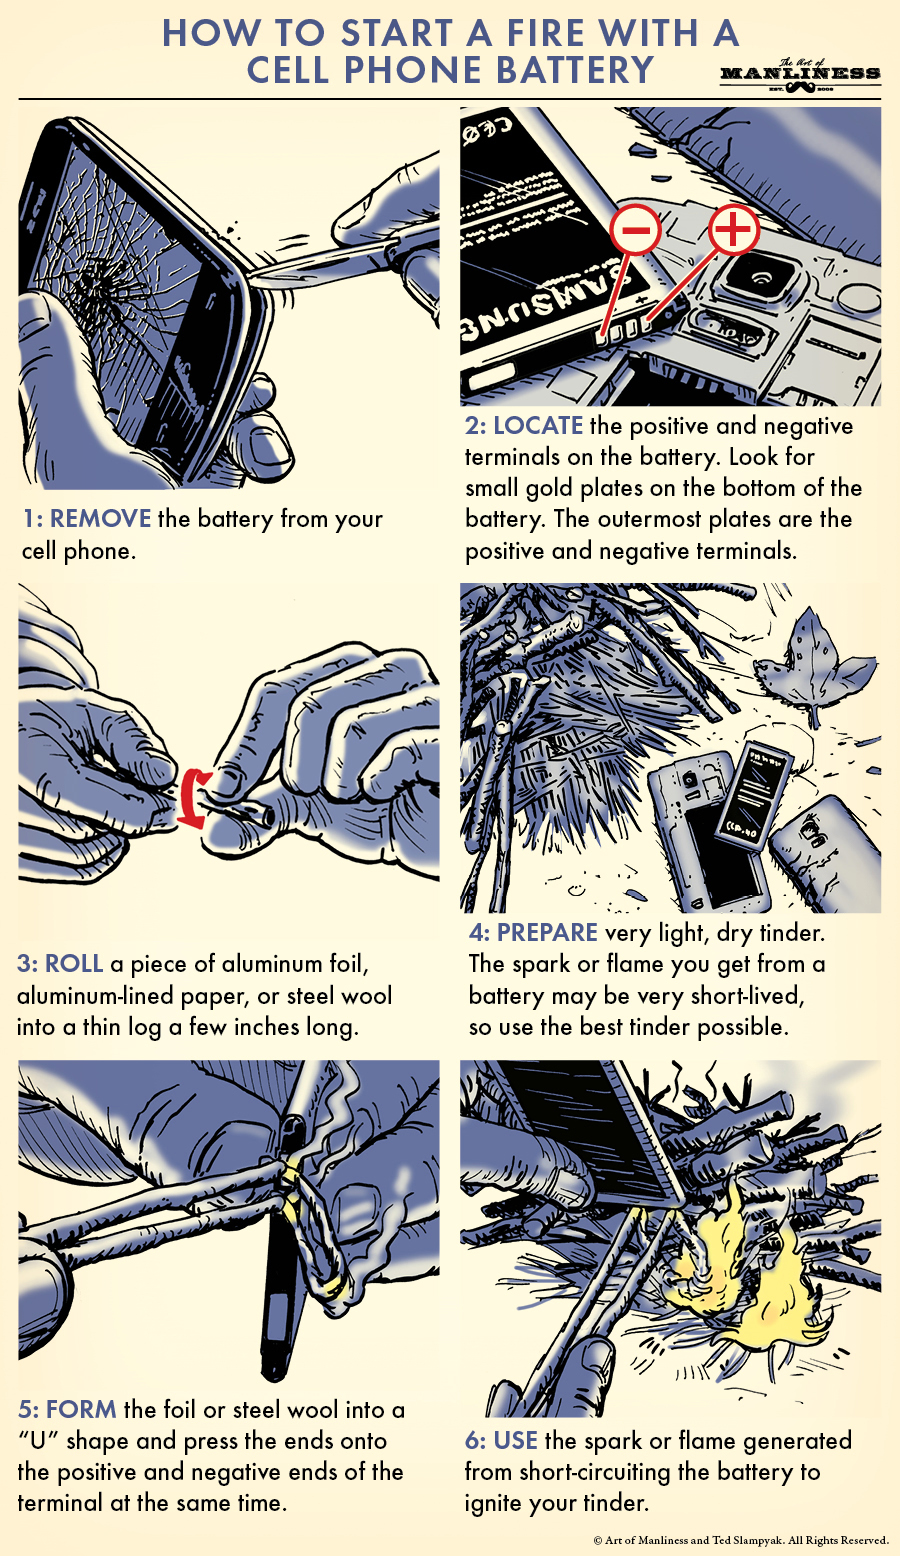 start a fire with a cell phone battery illustration